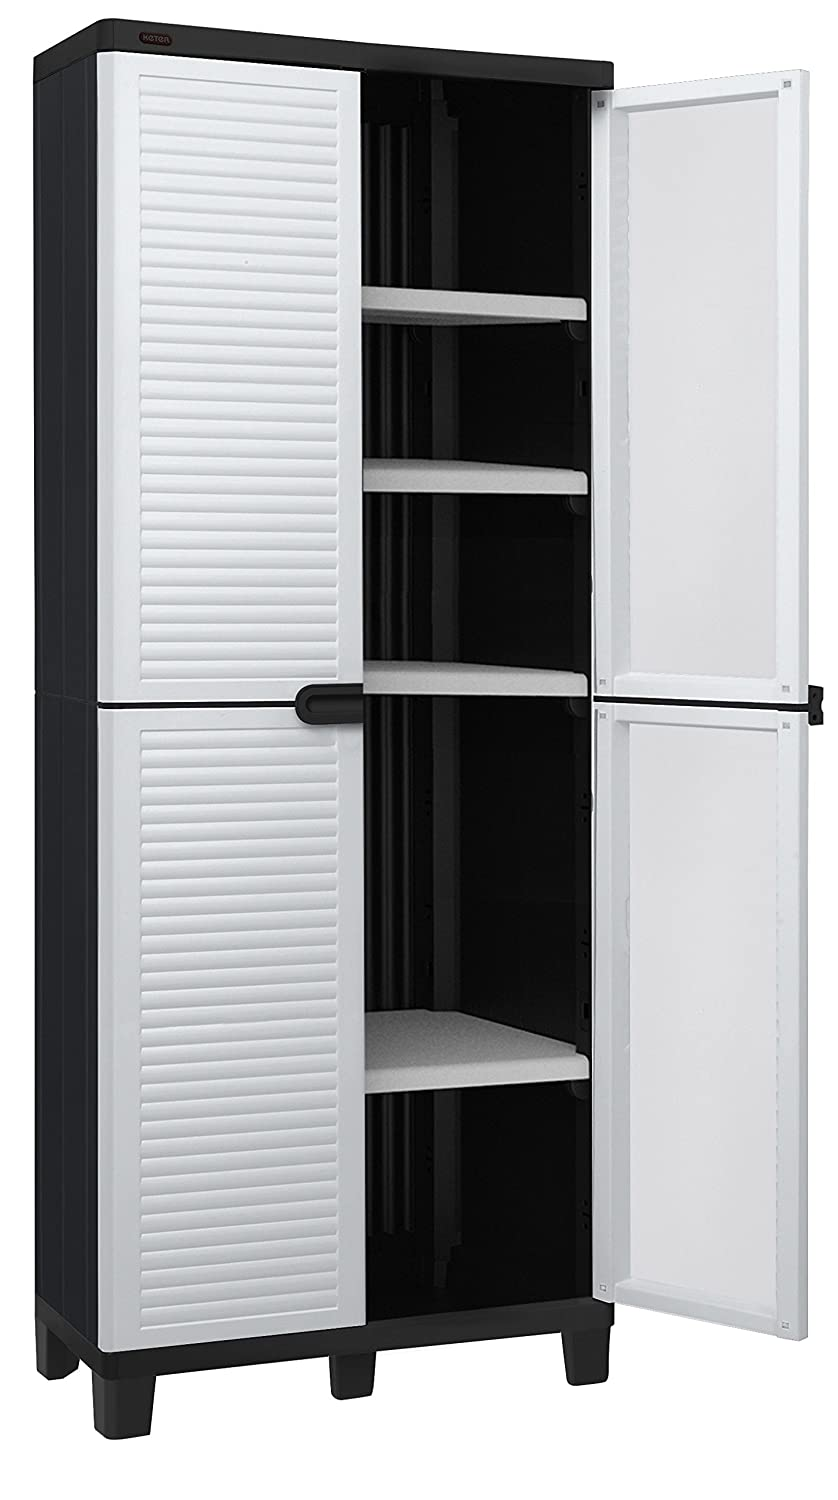 Allibert Kleiderschrank Space Winner, hoch, 225113